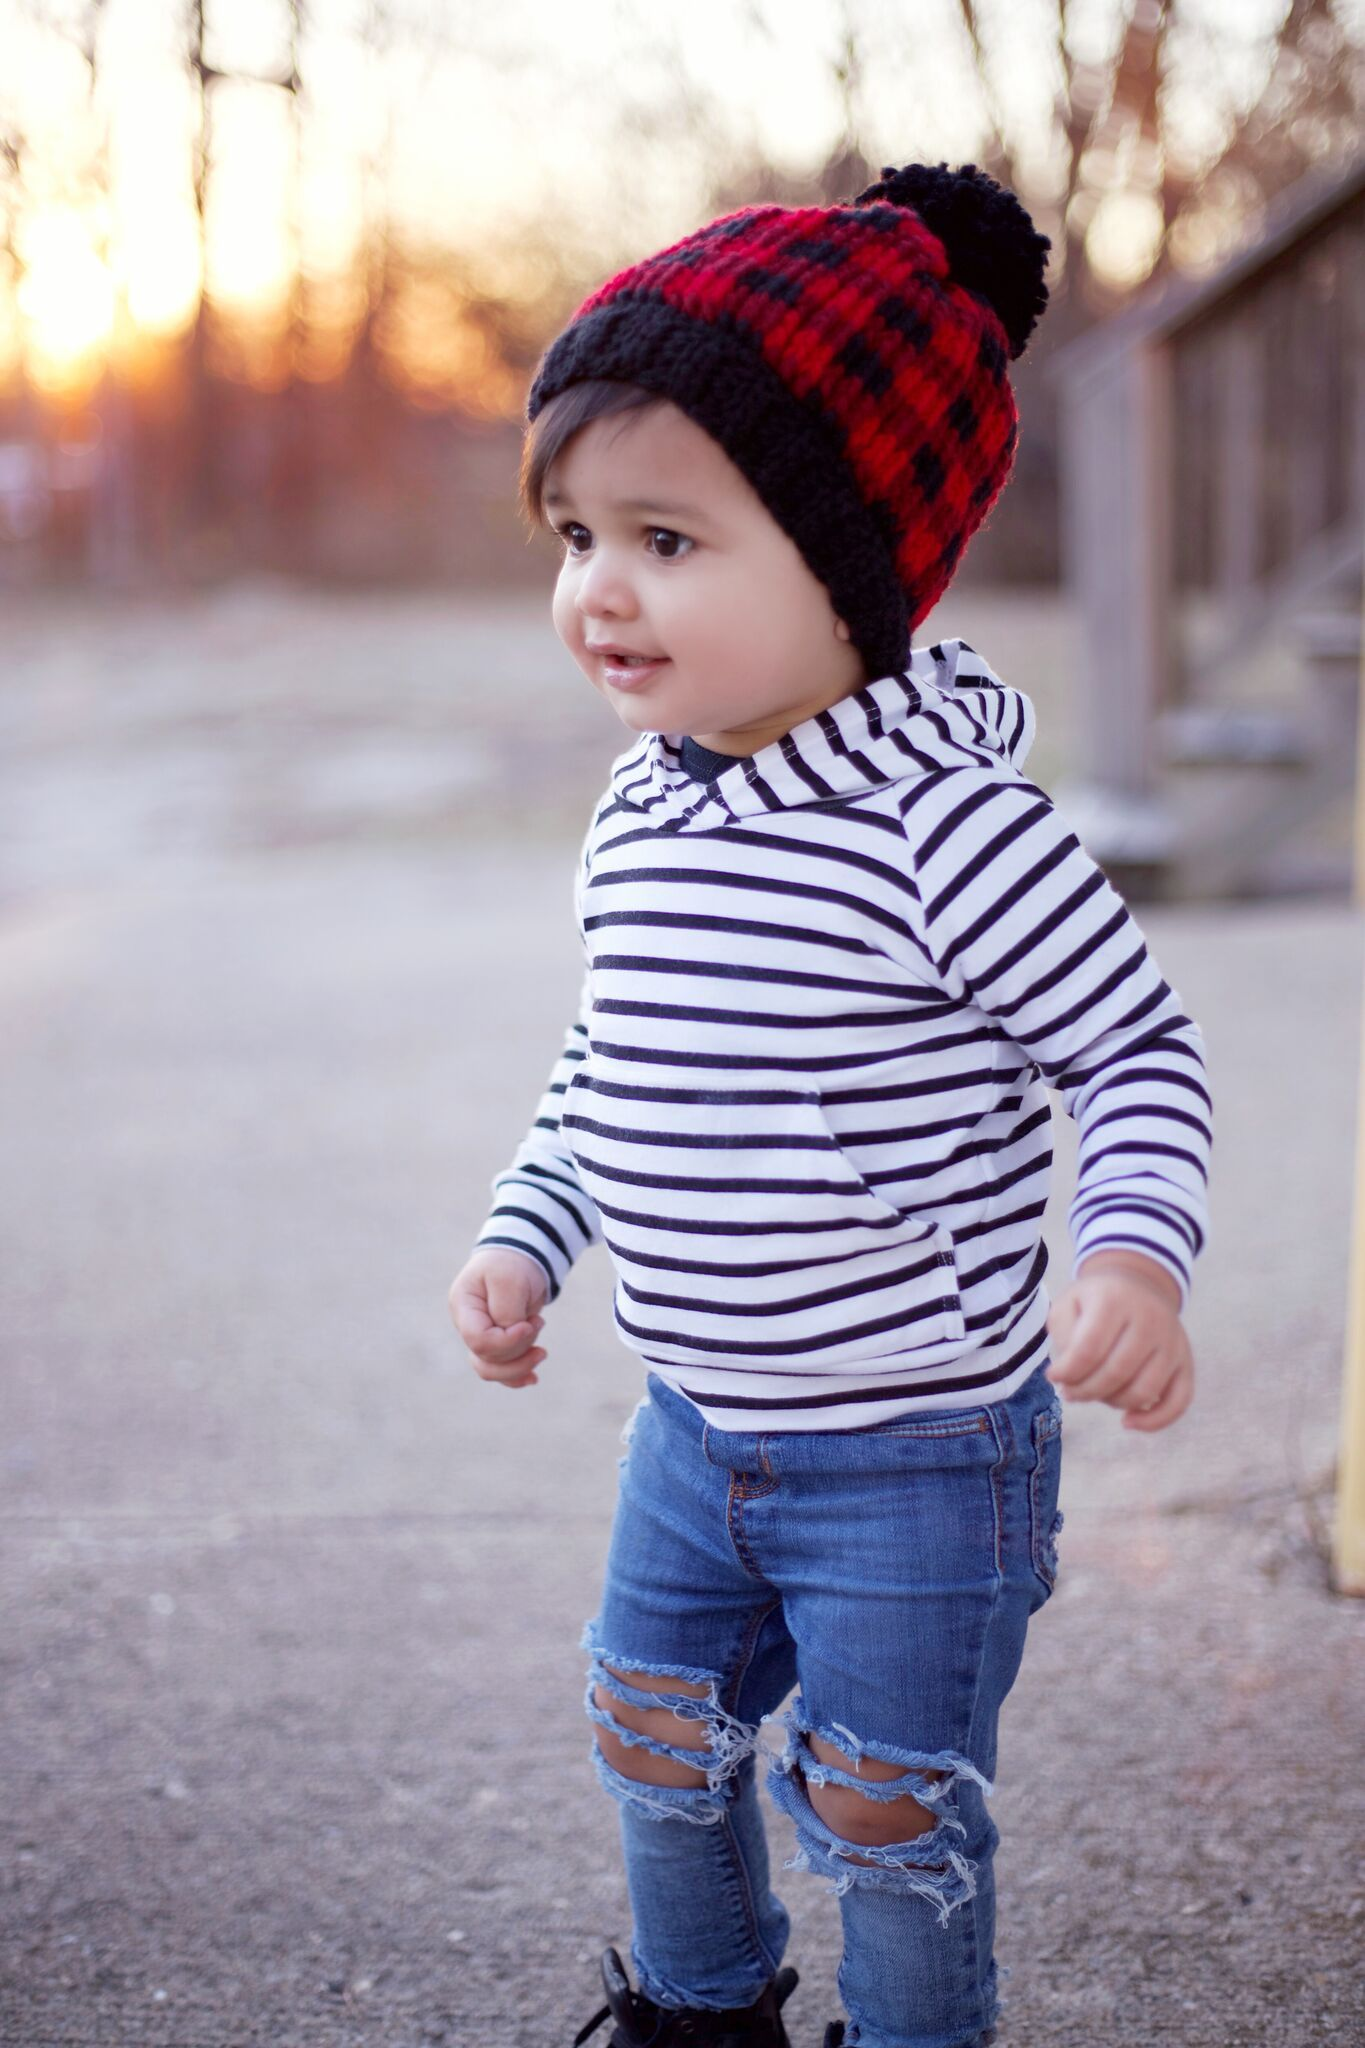 Hate The Ripped Jeans For A Baby But I Love Everything Else